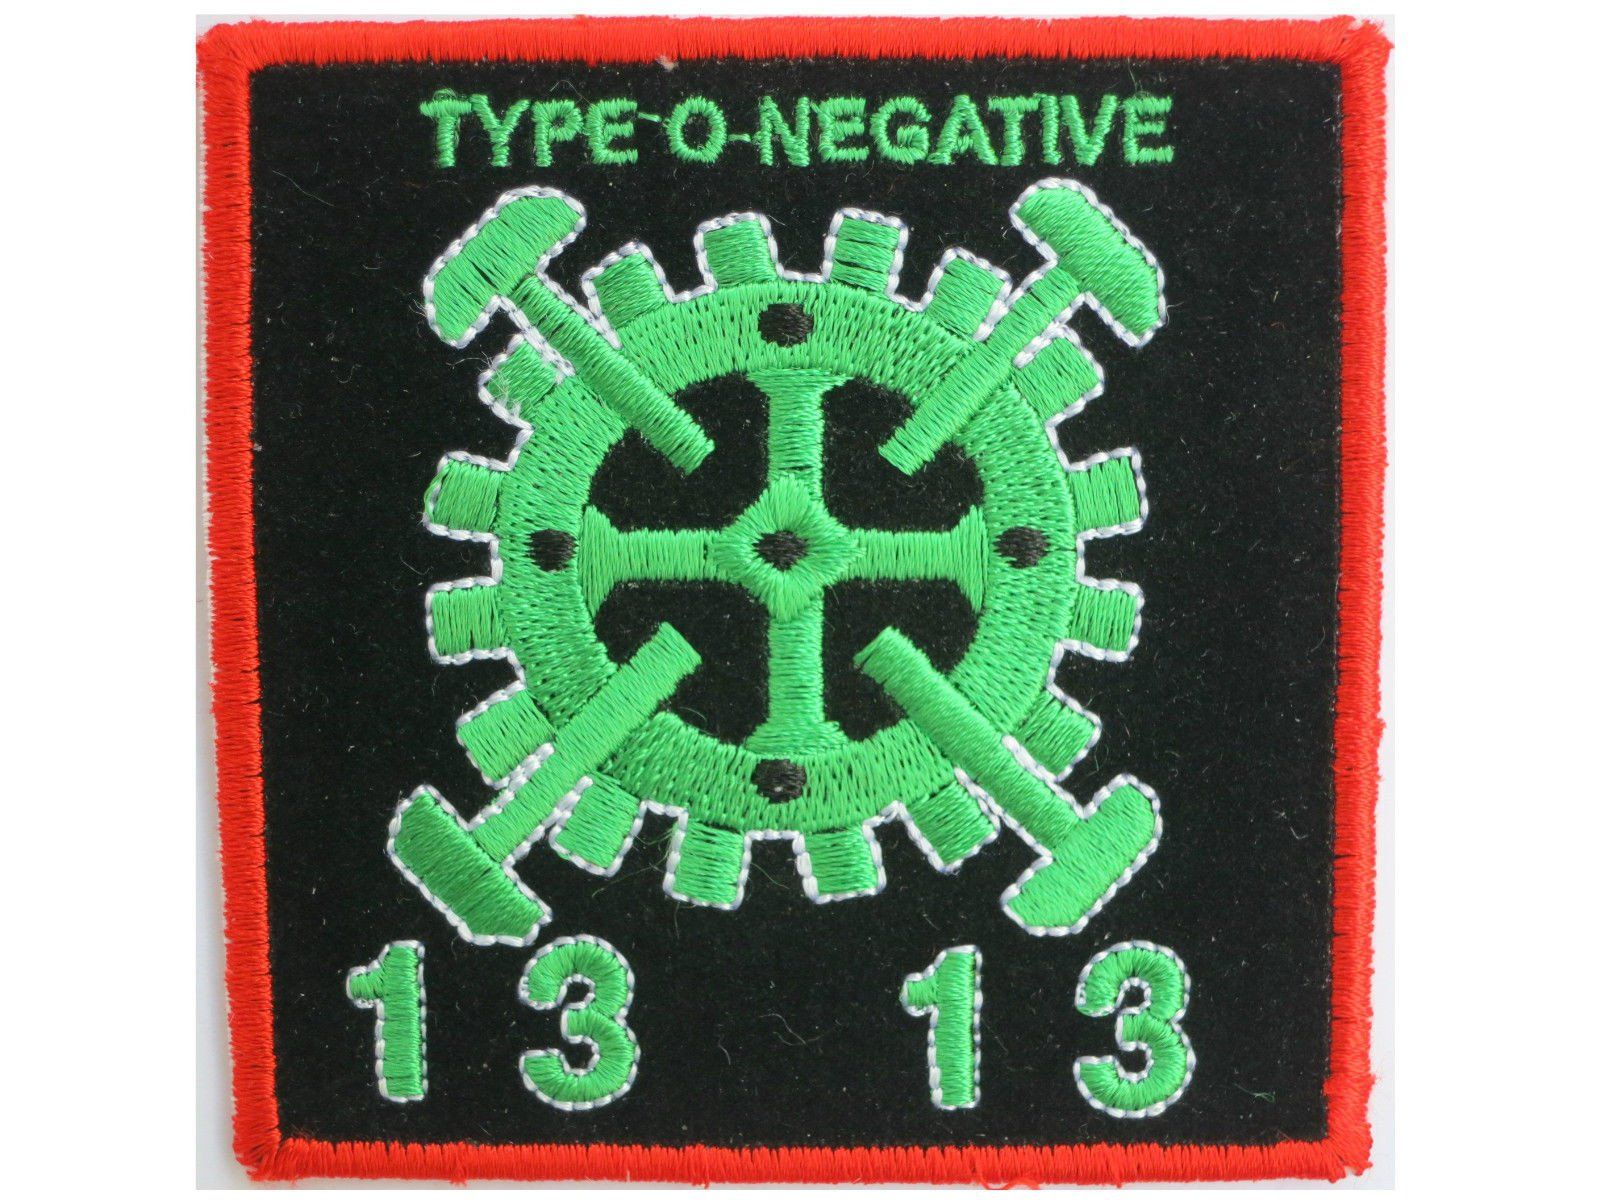 "TYPE O NEGATIVE TON 13 Gears Sew On Embroidered Patch 3.1""/8cm - A Patch E Store"